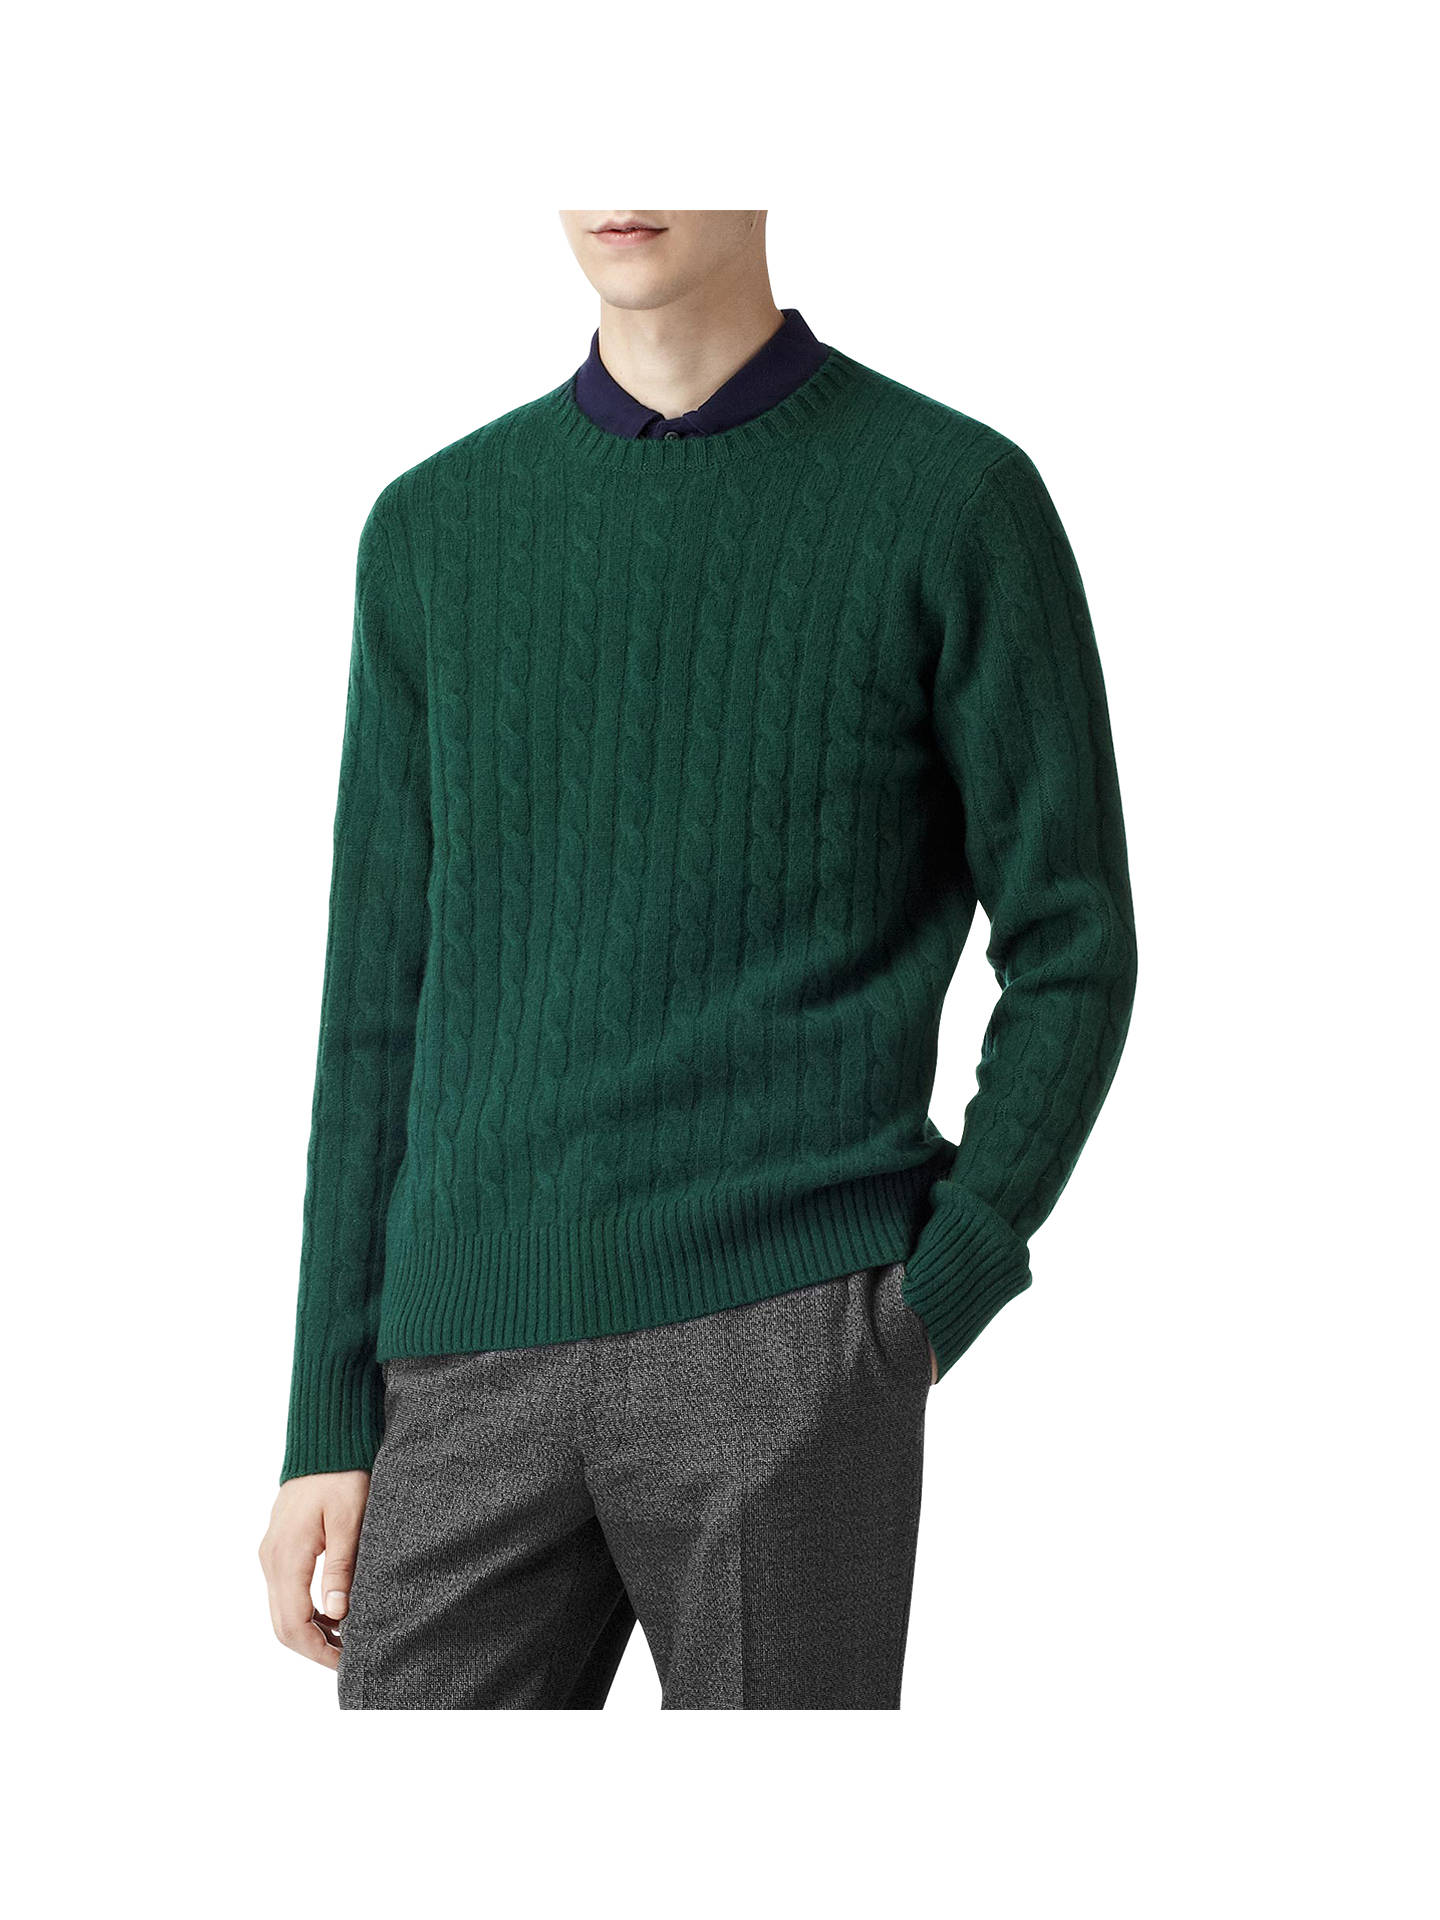 62fb7beb9e9 Reiss Buffalo Cable Lambswool Crew Neck Jumper | Dark Green at John ...